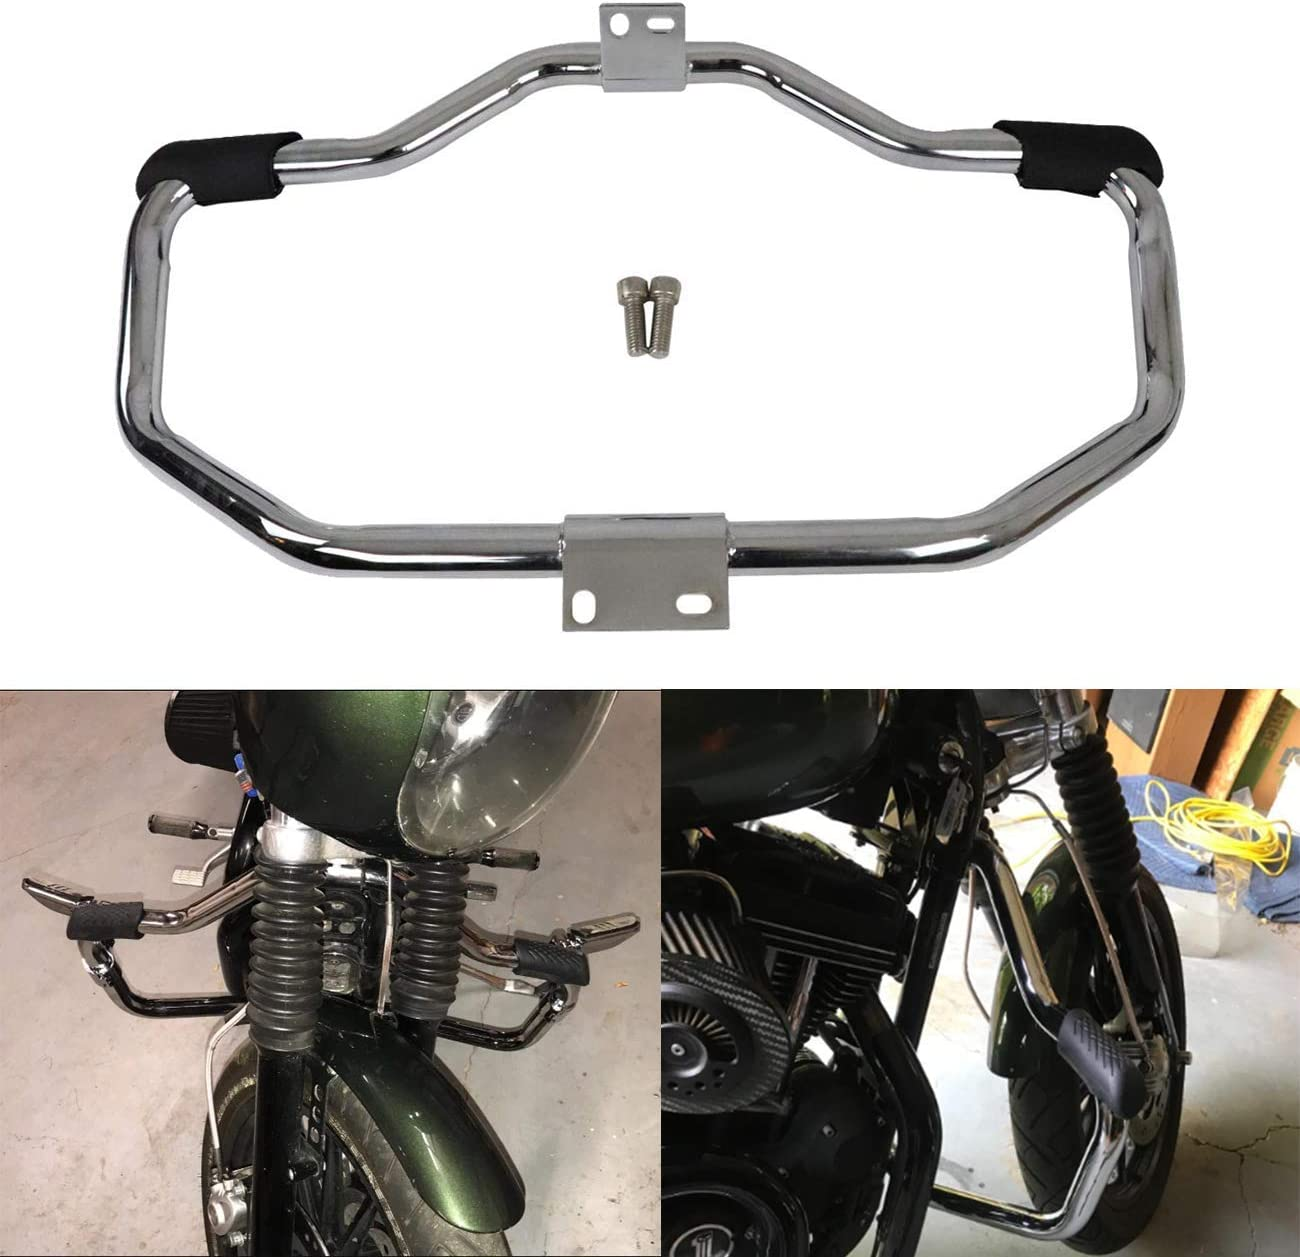 Chrome Engine Guard Highway Crash Bar For Harley Sportster Iron 883 883N XL1200 2004-2020